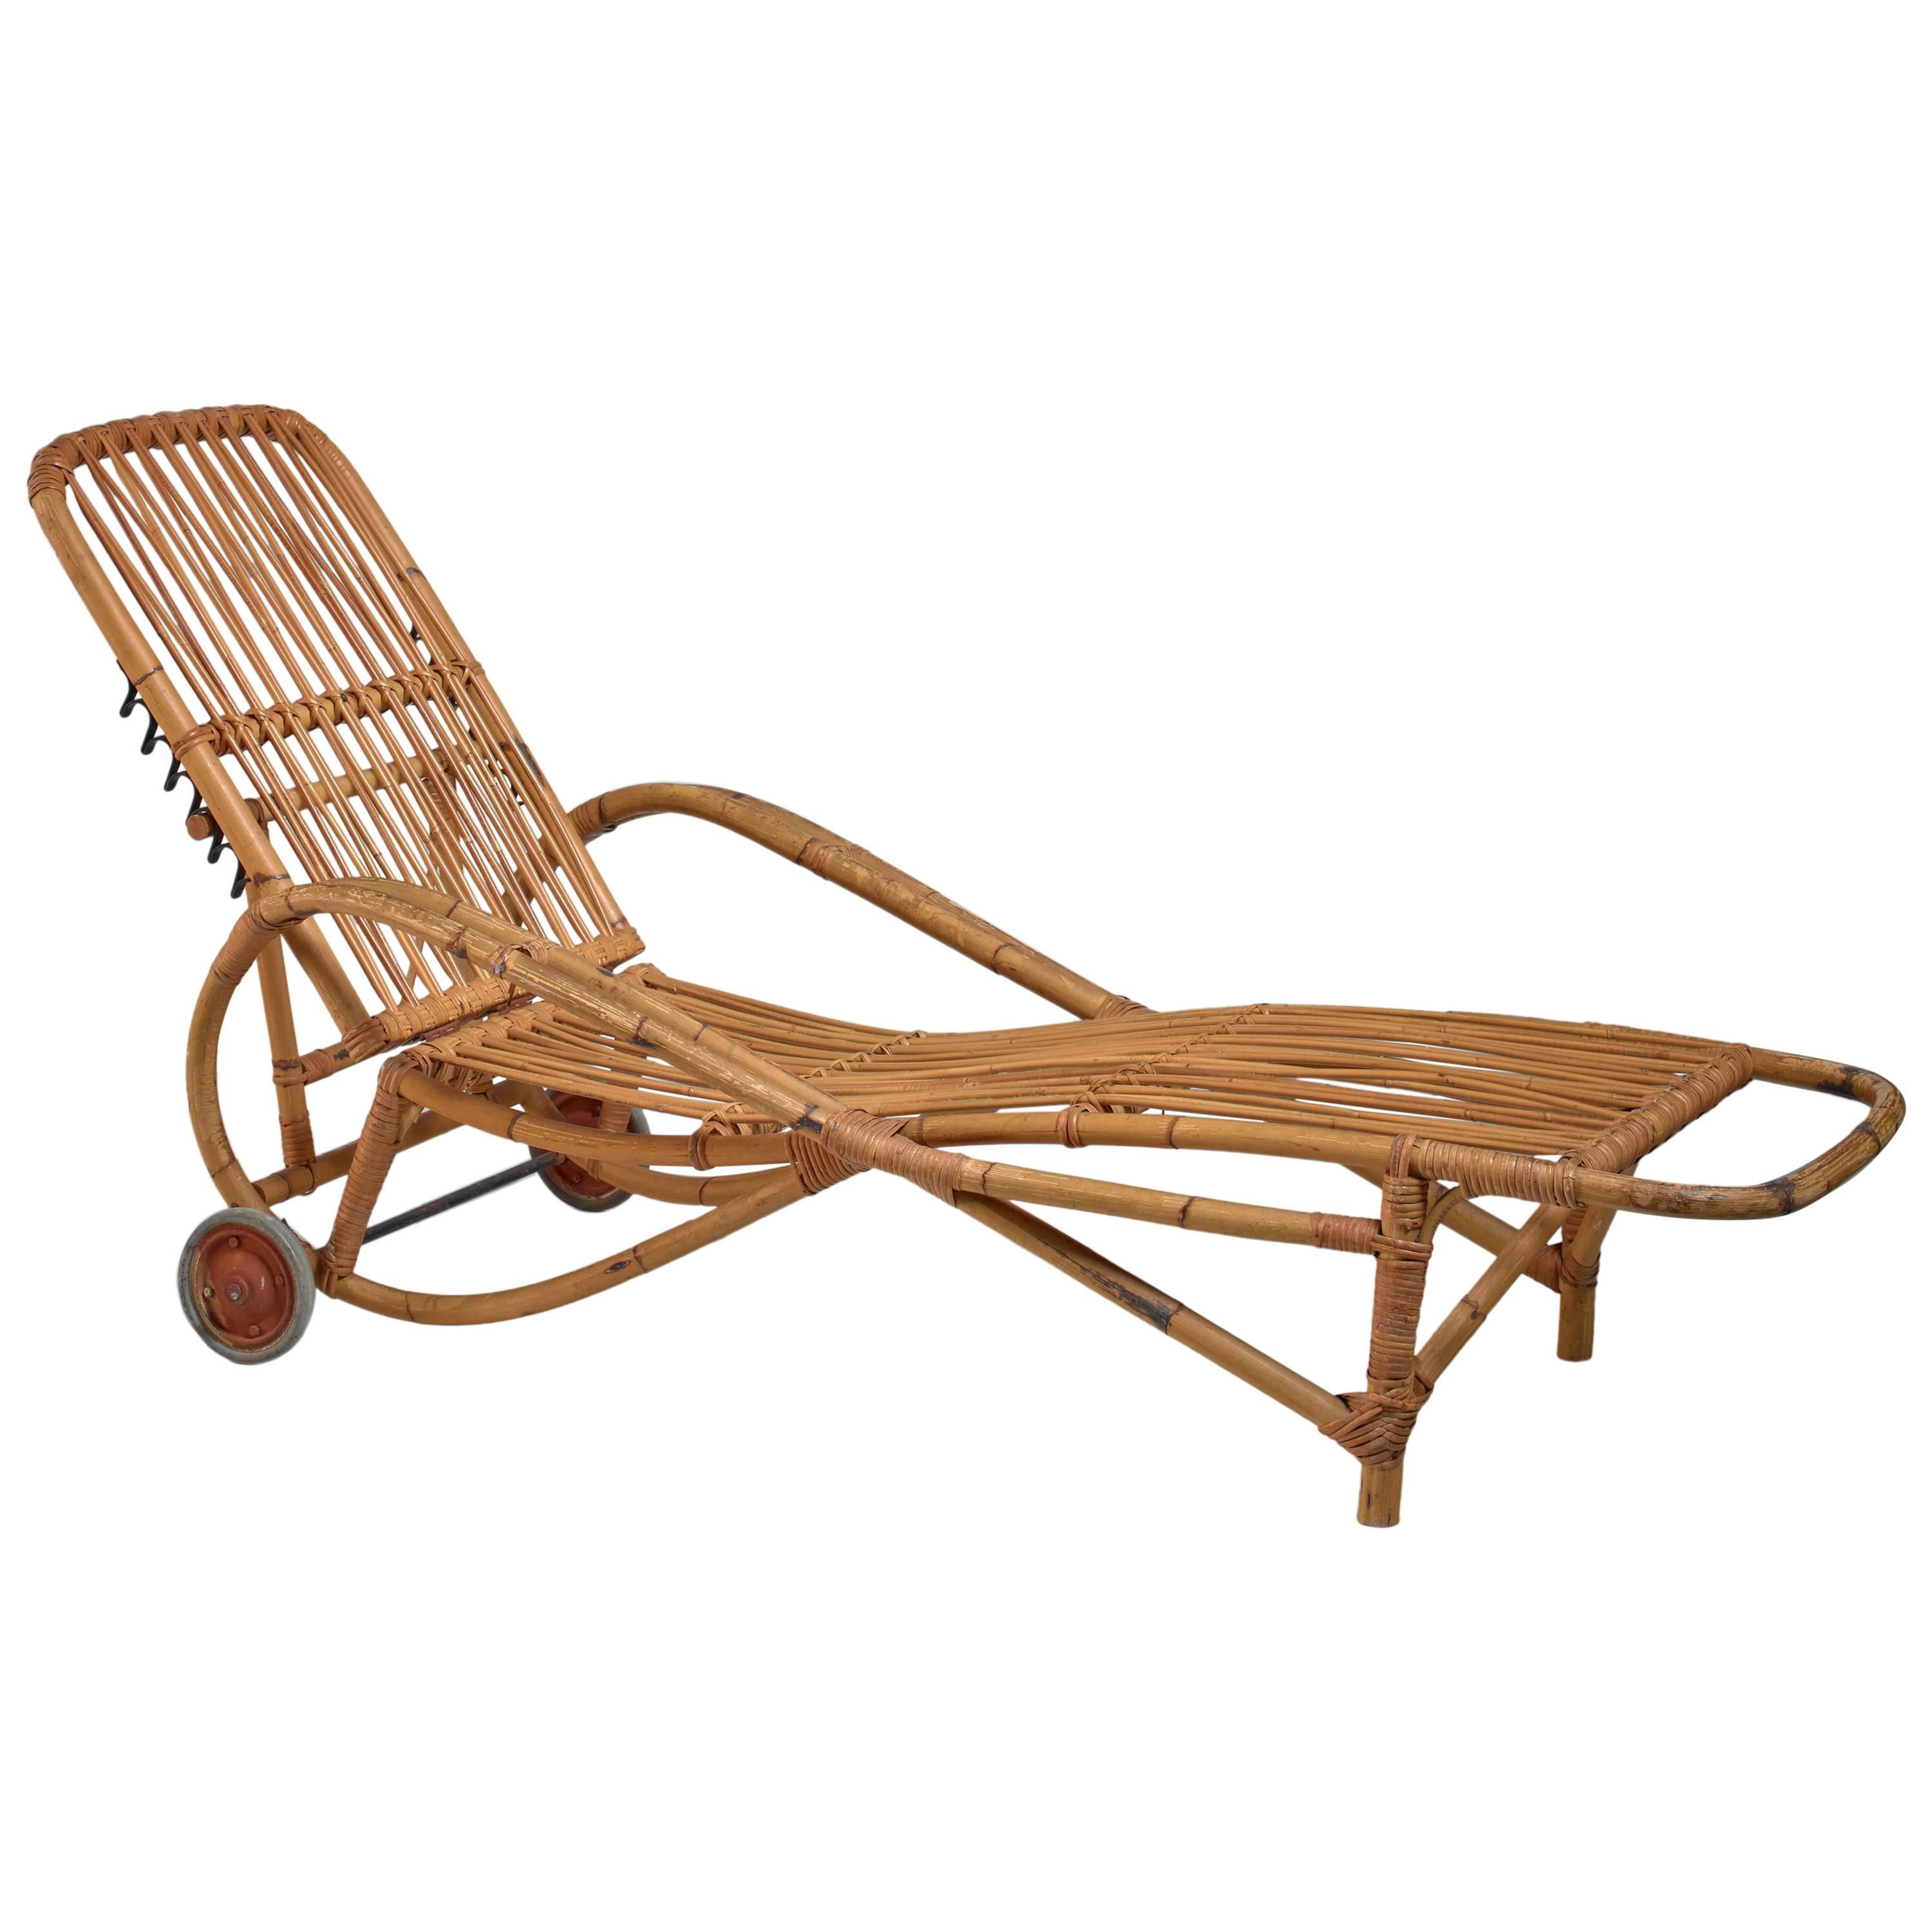 Genial Adjustable Bamboo Garden Chaise Longue, Germany, 1930s